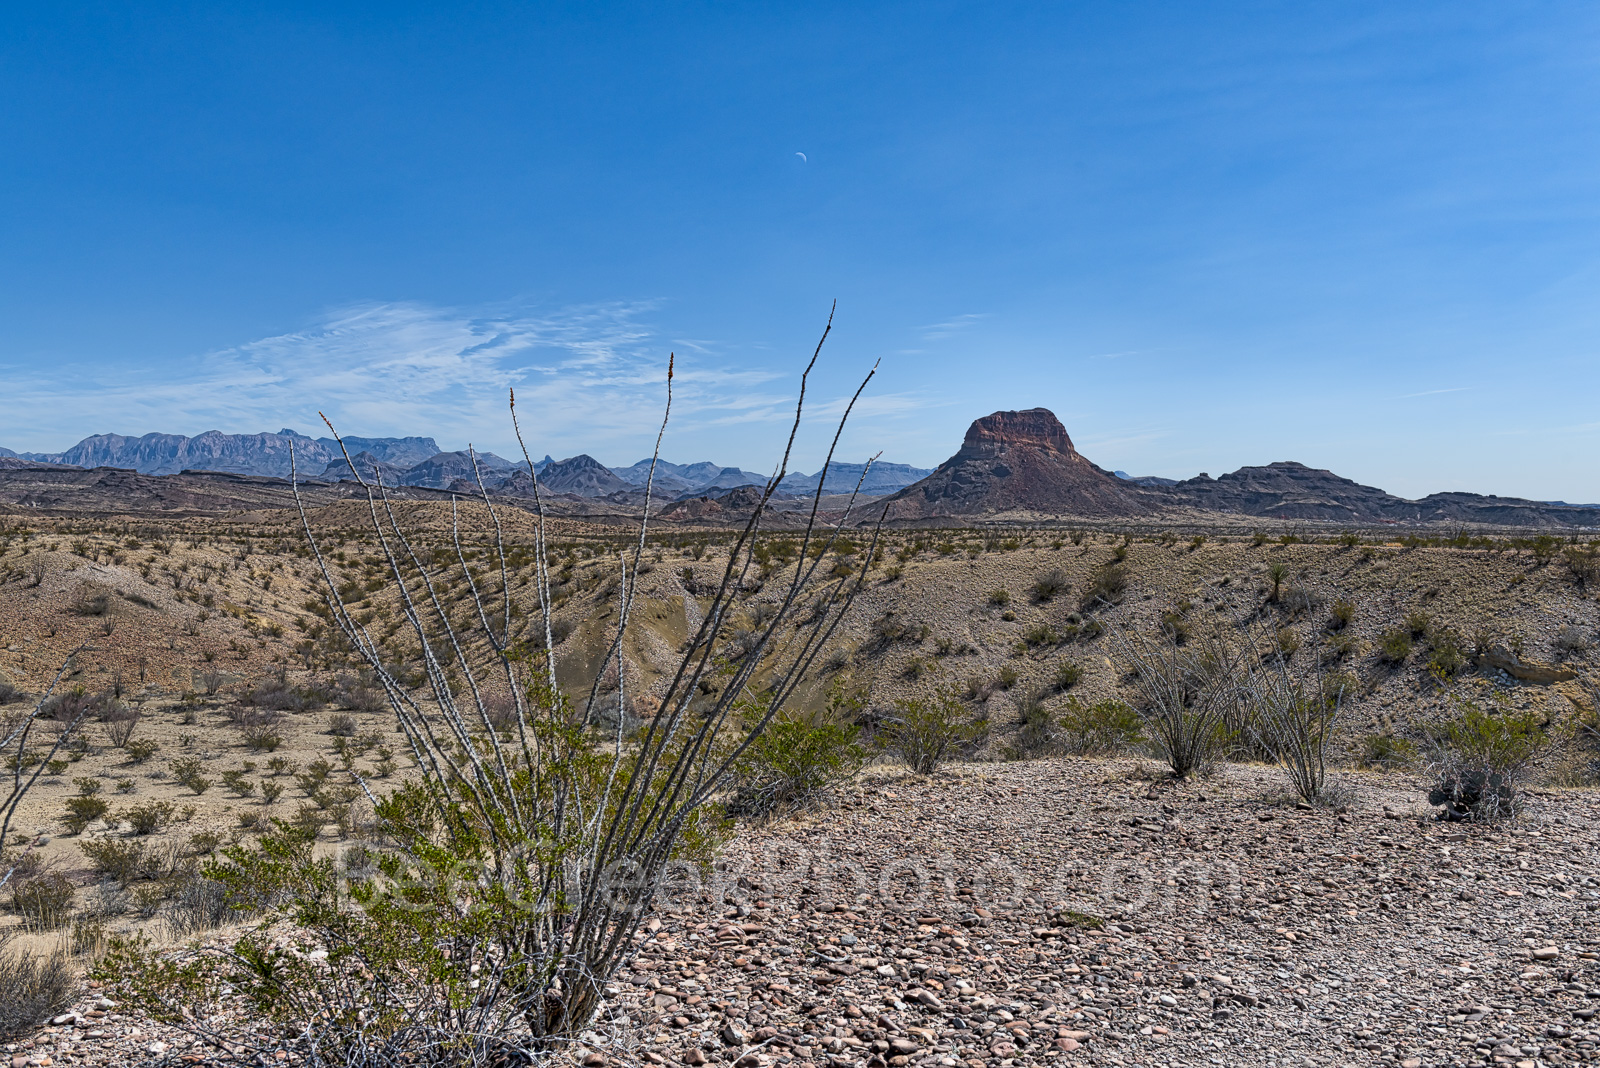 Octillos, Big Bend National Park, Cerro Castellian, Chisos mountains, distant views, desert, landscape,, photo